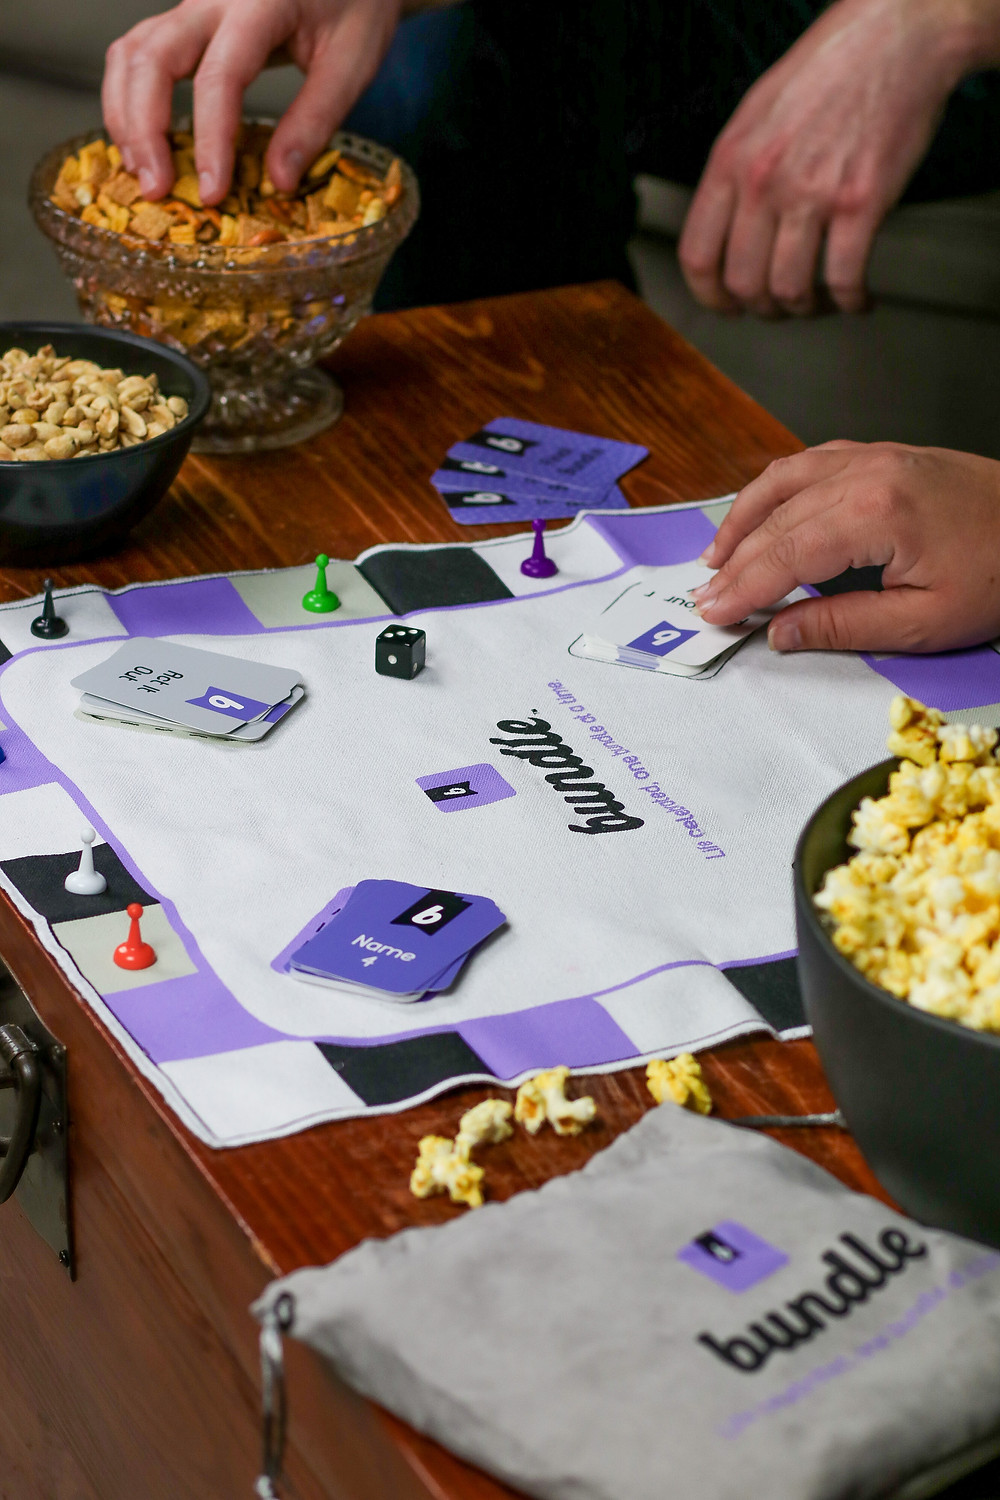 make your own board game The Bundle Game